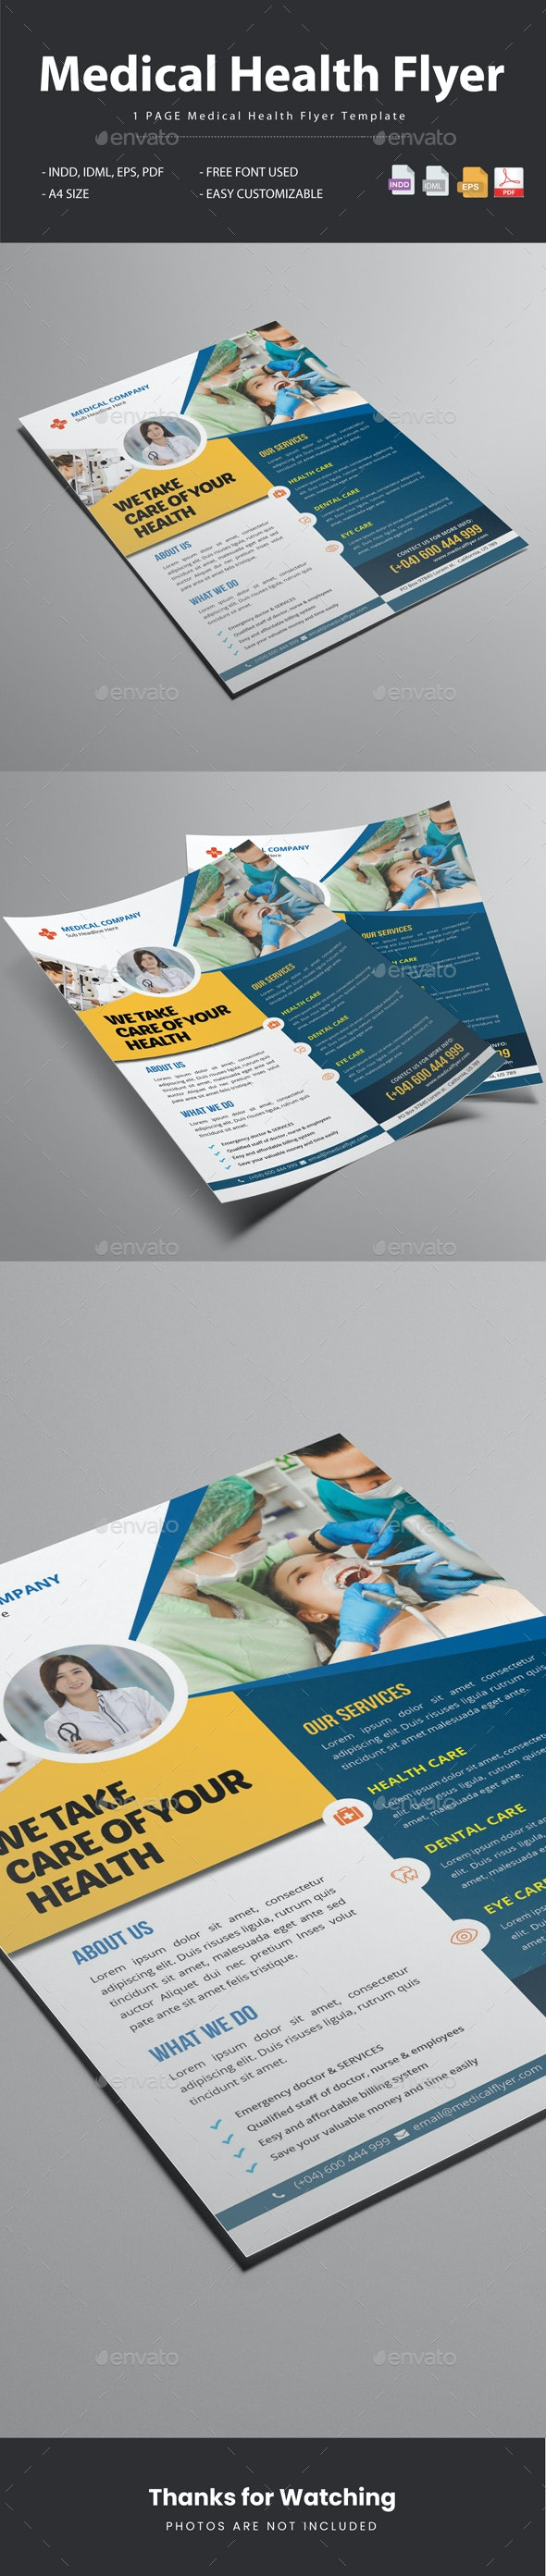 Medical Health Flyer Template - Flyers Print Templates